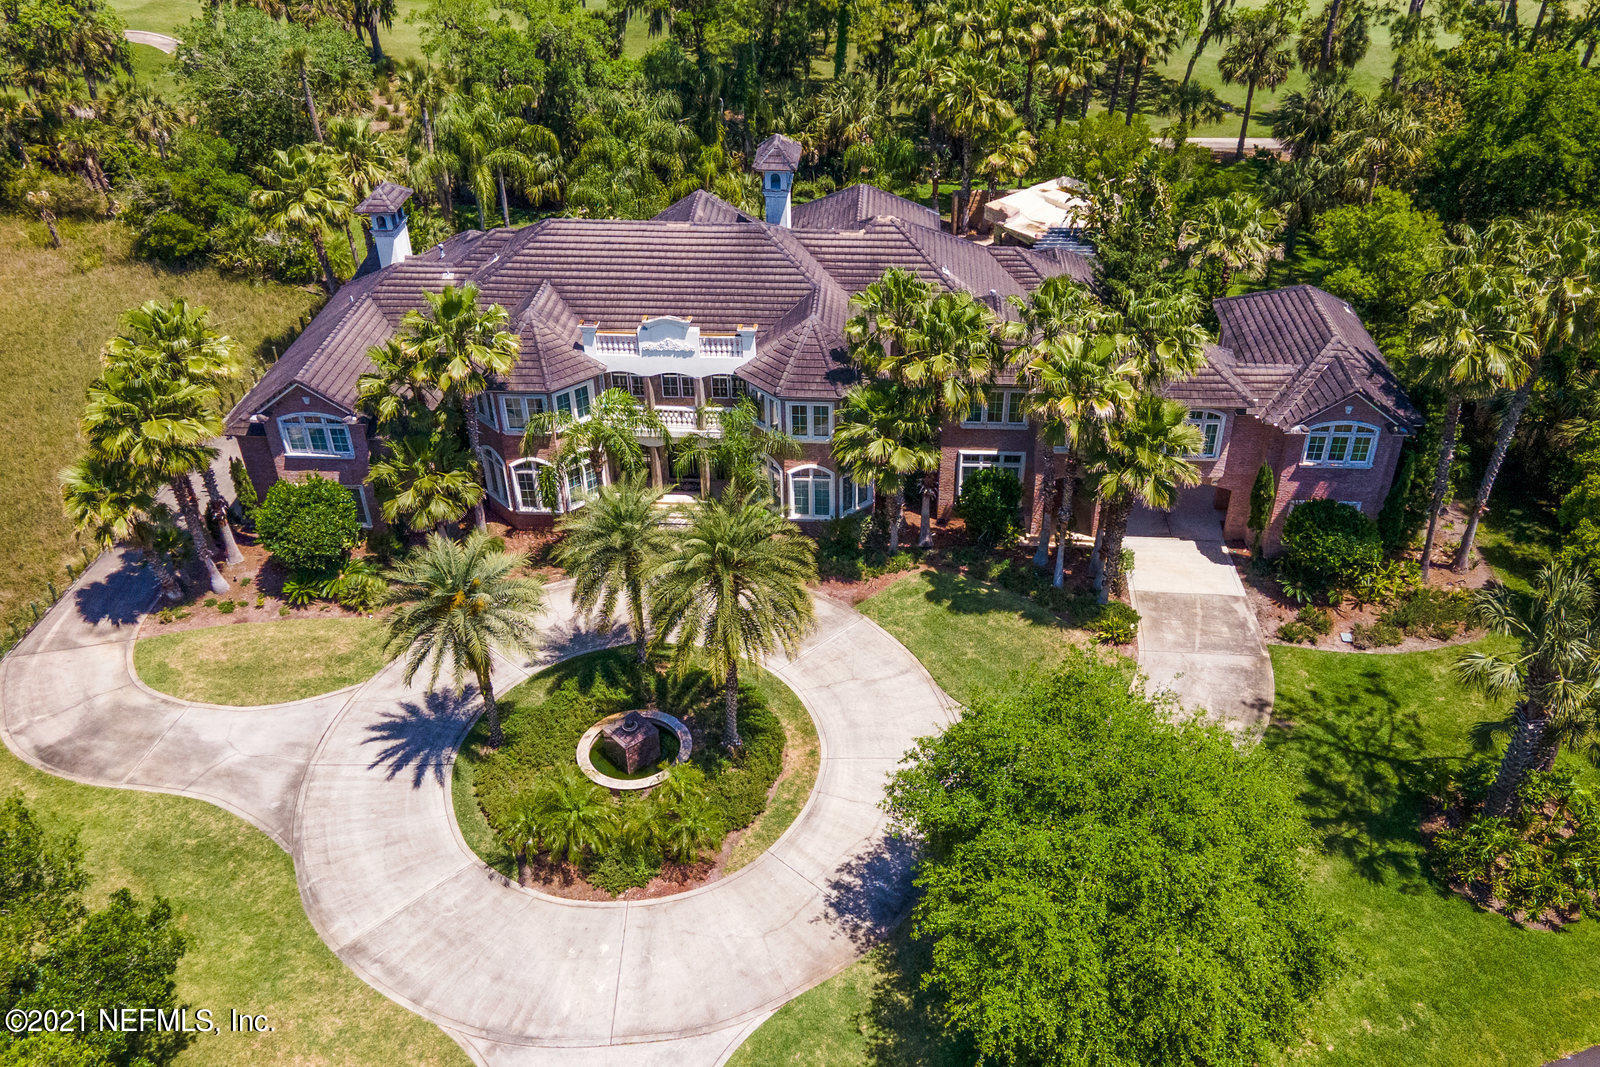 104 PALM FOREST, PONTE VEDRA BEACH, FLORIDA 32082, 6 Bedrooms Bedrooms, ,6 BathroomsBathrooms,Residential,For sale,PALM FOREST,1107784